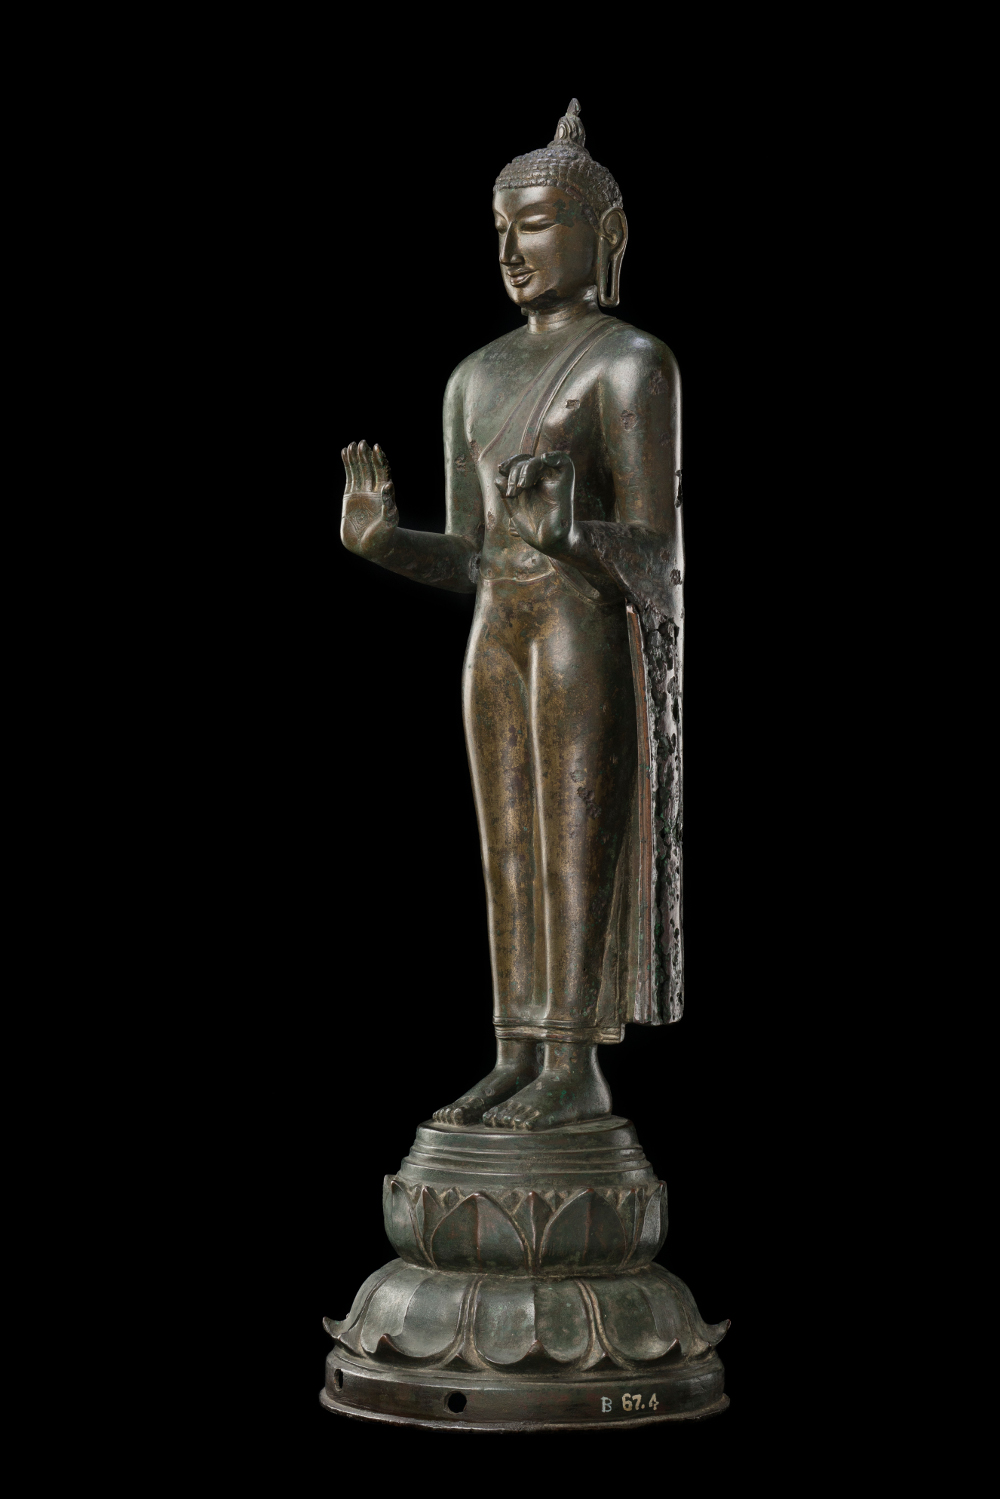 Chola Buddha - BronzeAD 900–1000 Nagapattinam, Tamil Nadu, IndiaGift from the Collection of Smt. Amravati Gupta CSMVS, MumbaiThis statue comes from the port town of Nagapattinam, a leading centre of artistic production of Buddhist imagery during the reign of the Chola dynasty (about AD 880–1279). The flame on top of his ushnisha (cranial protuberance) is symbolic of the wisdom that is believed to have emerged during his meditation. The iconography of the flaming ushnisha directly influenced the images of the Buddha in Sri Lanka, from where it spread to East and Southeast Asia.